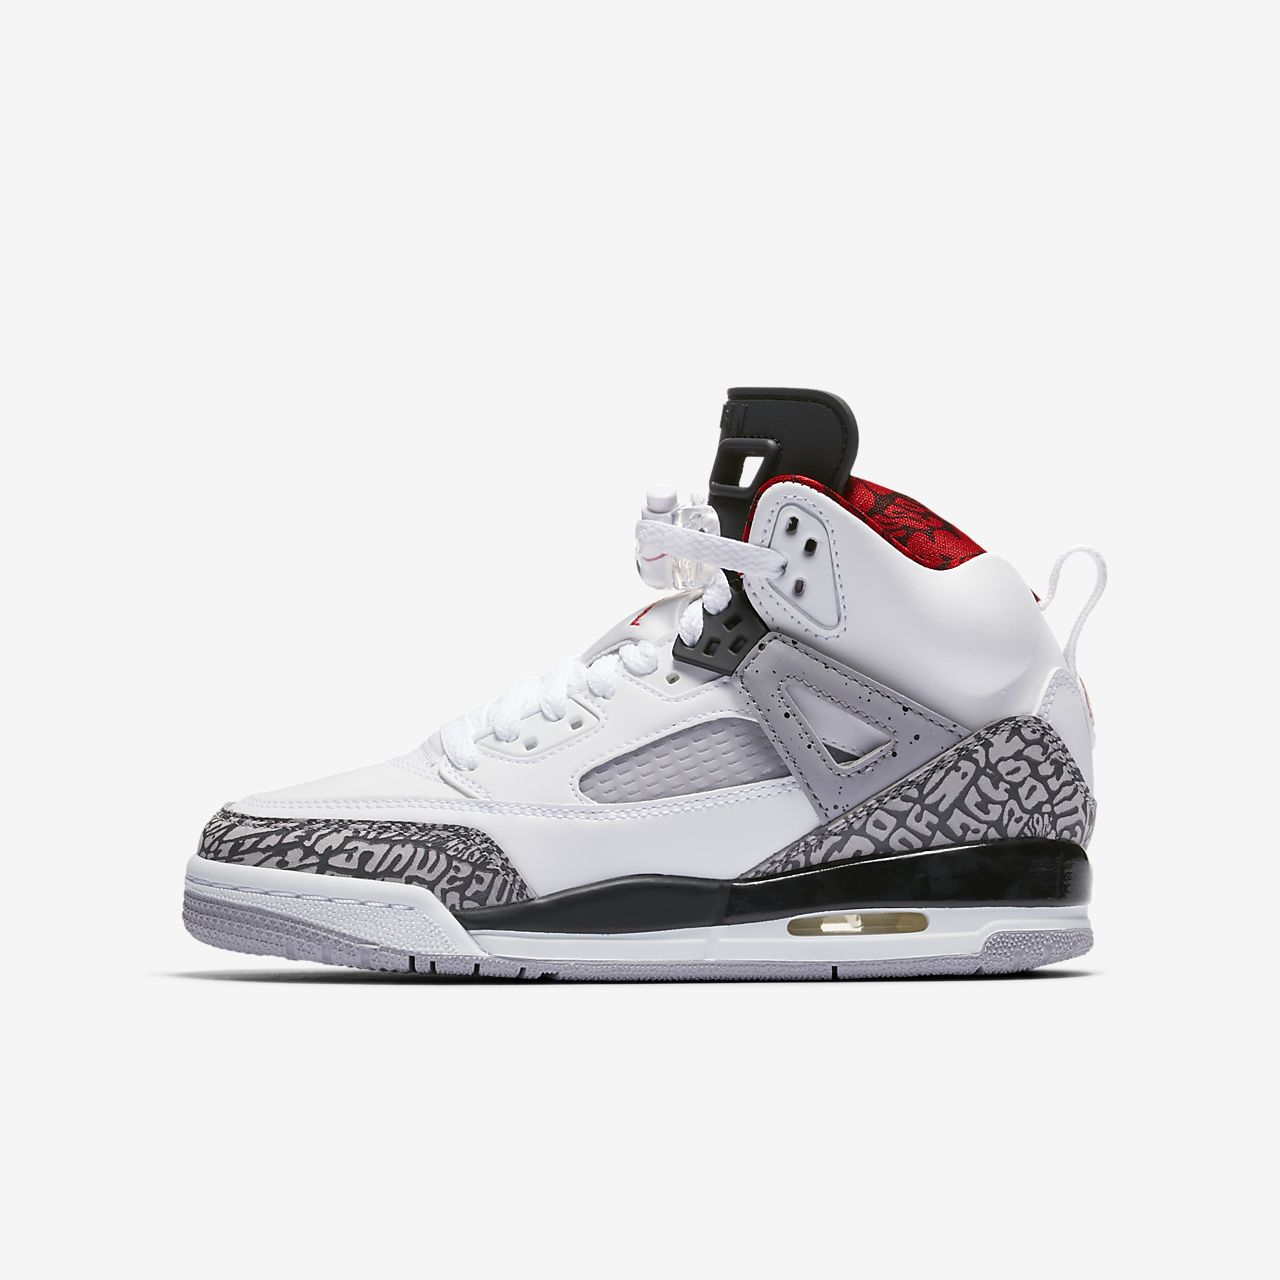 jordan shoes customize website image links incorporated 789494